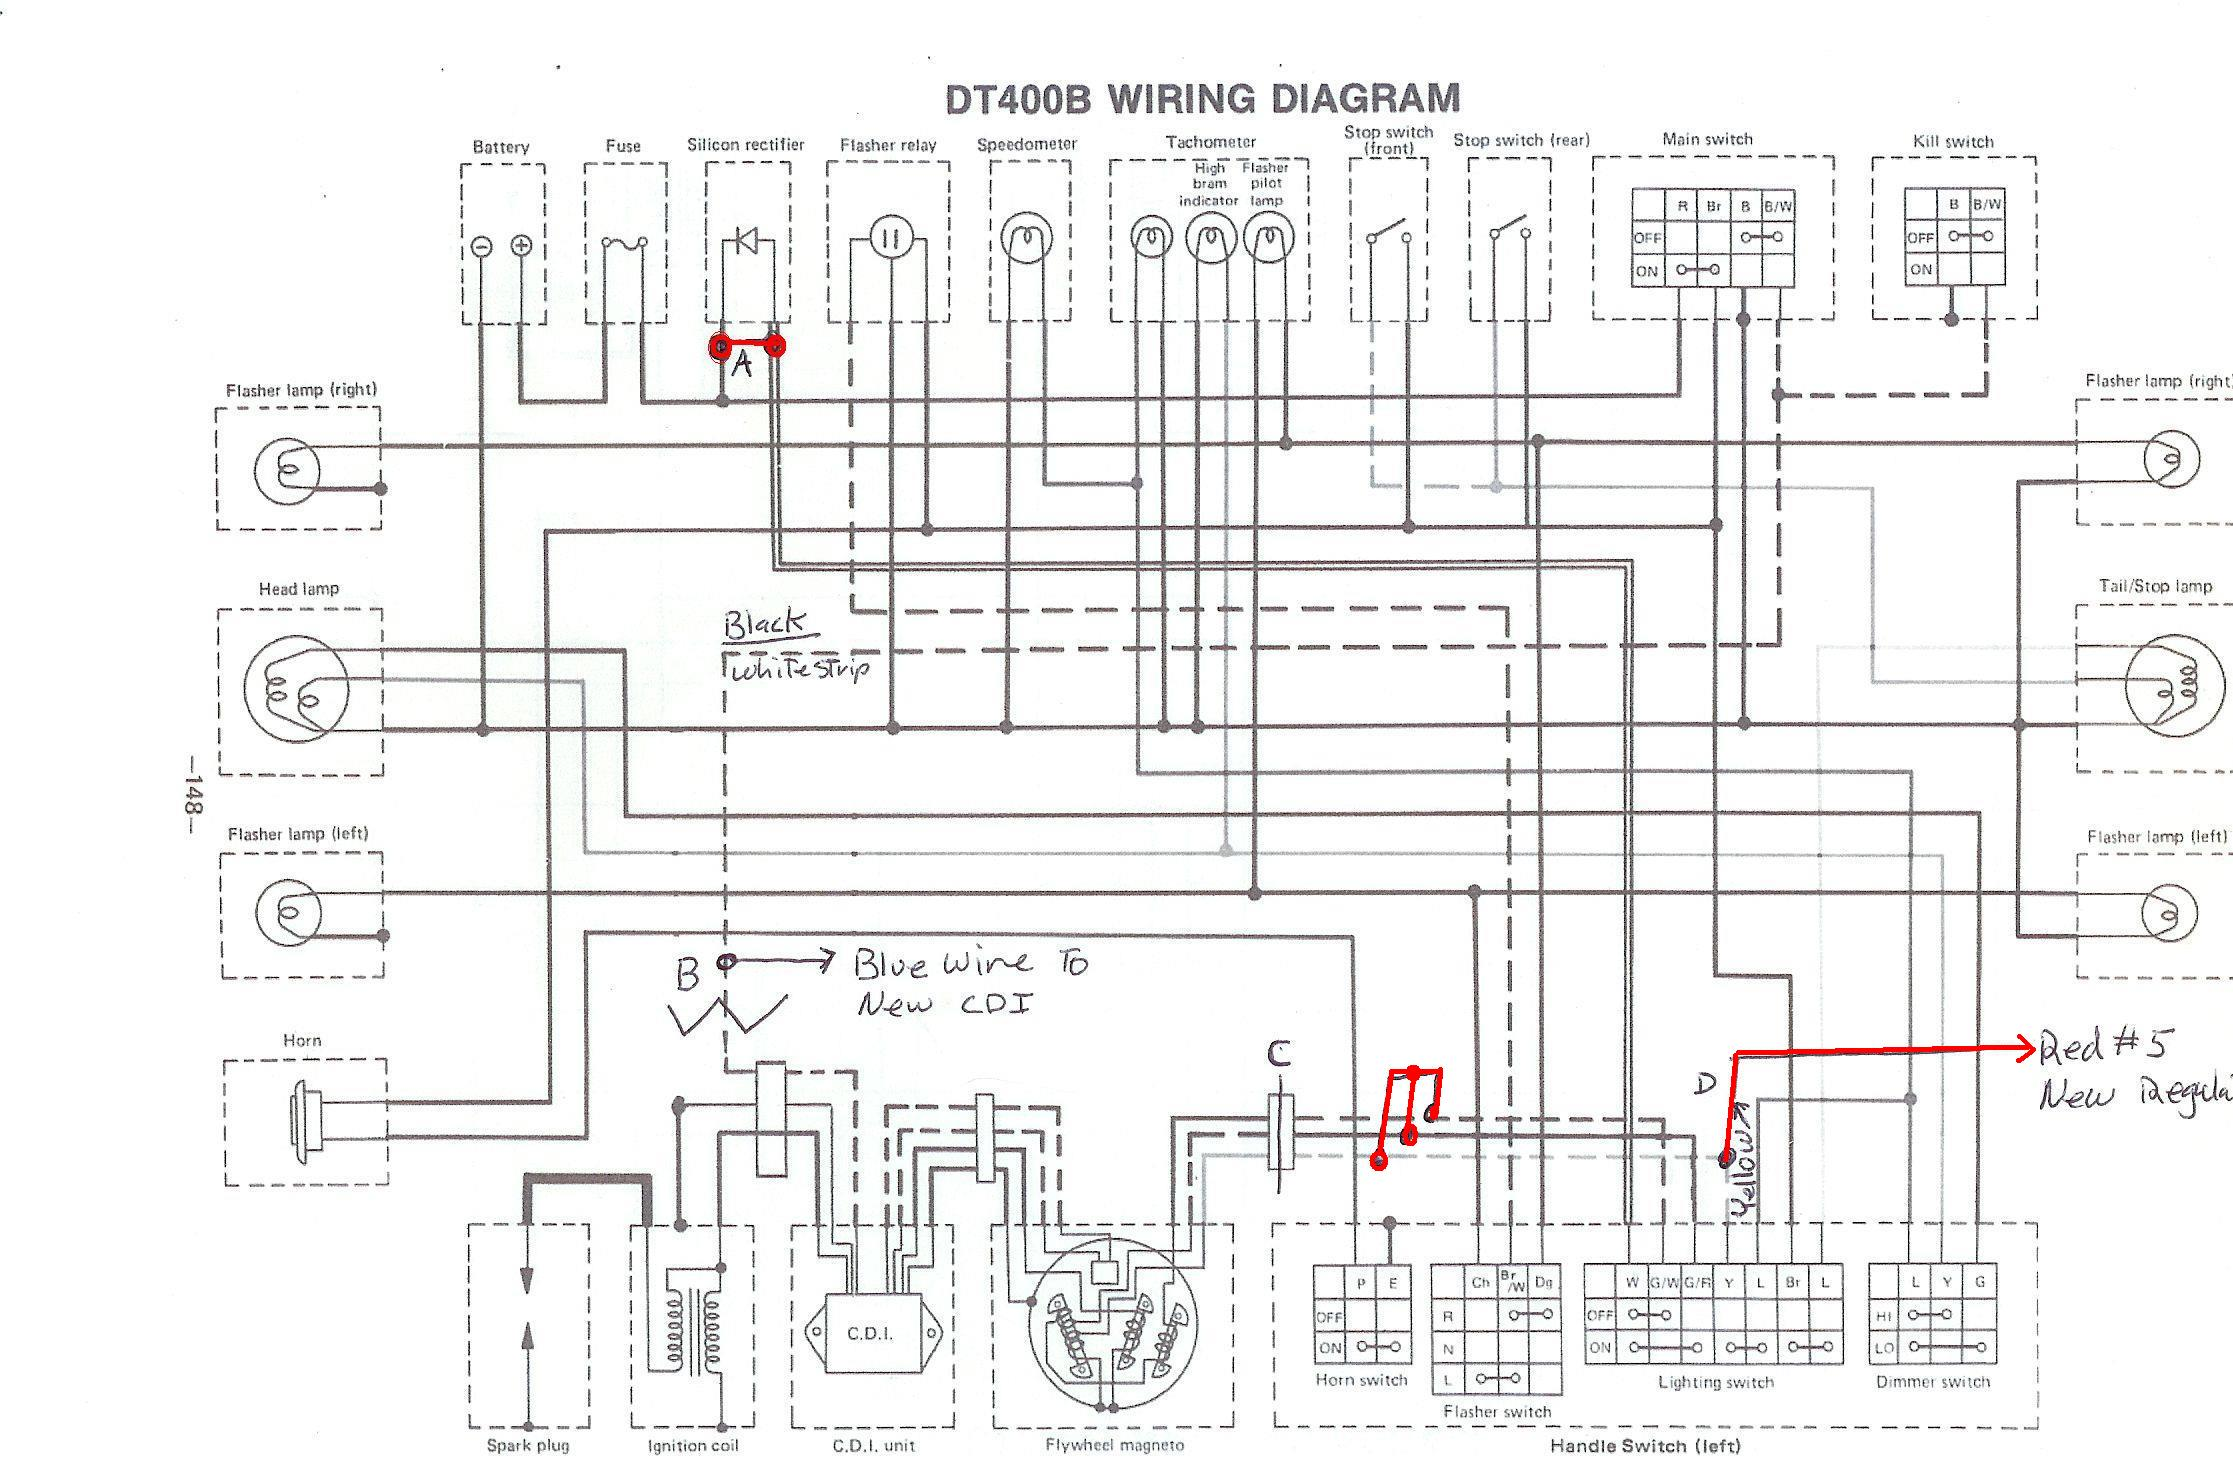 powerdynamo biz deu systems 7238 dt400wire jpg our explore crossword ideas and more